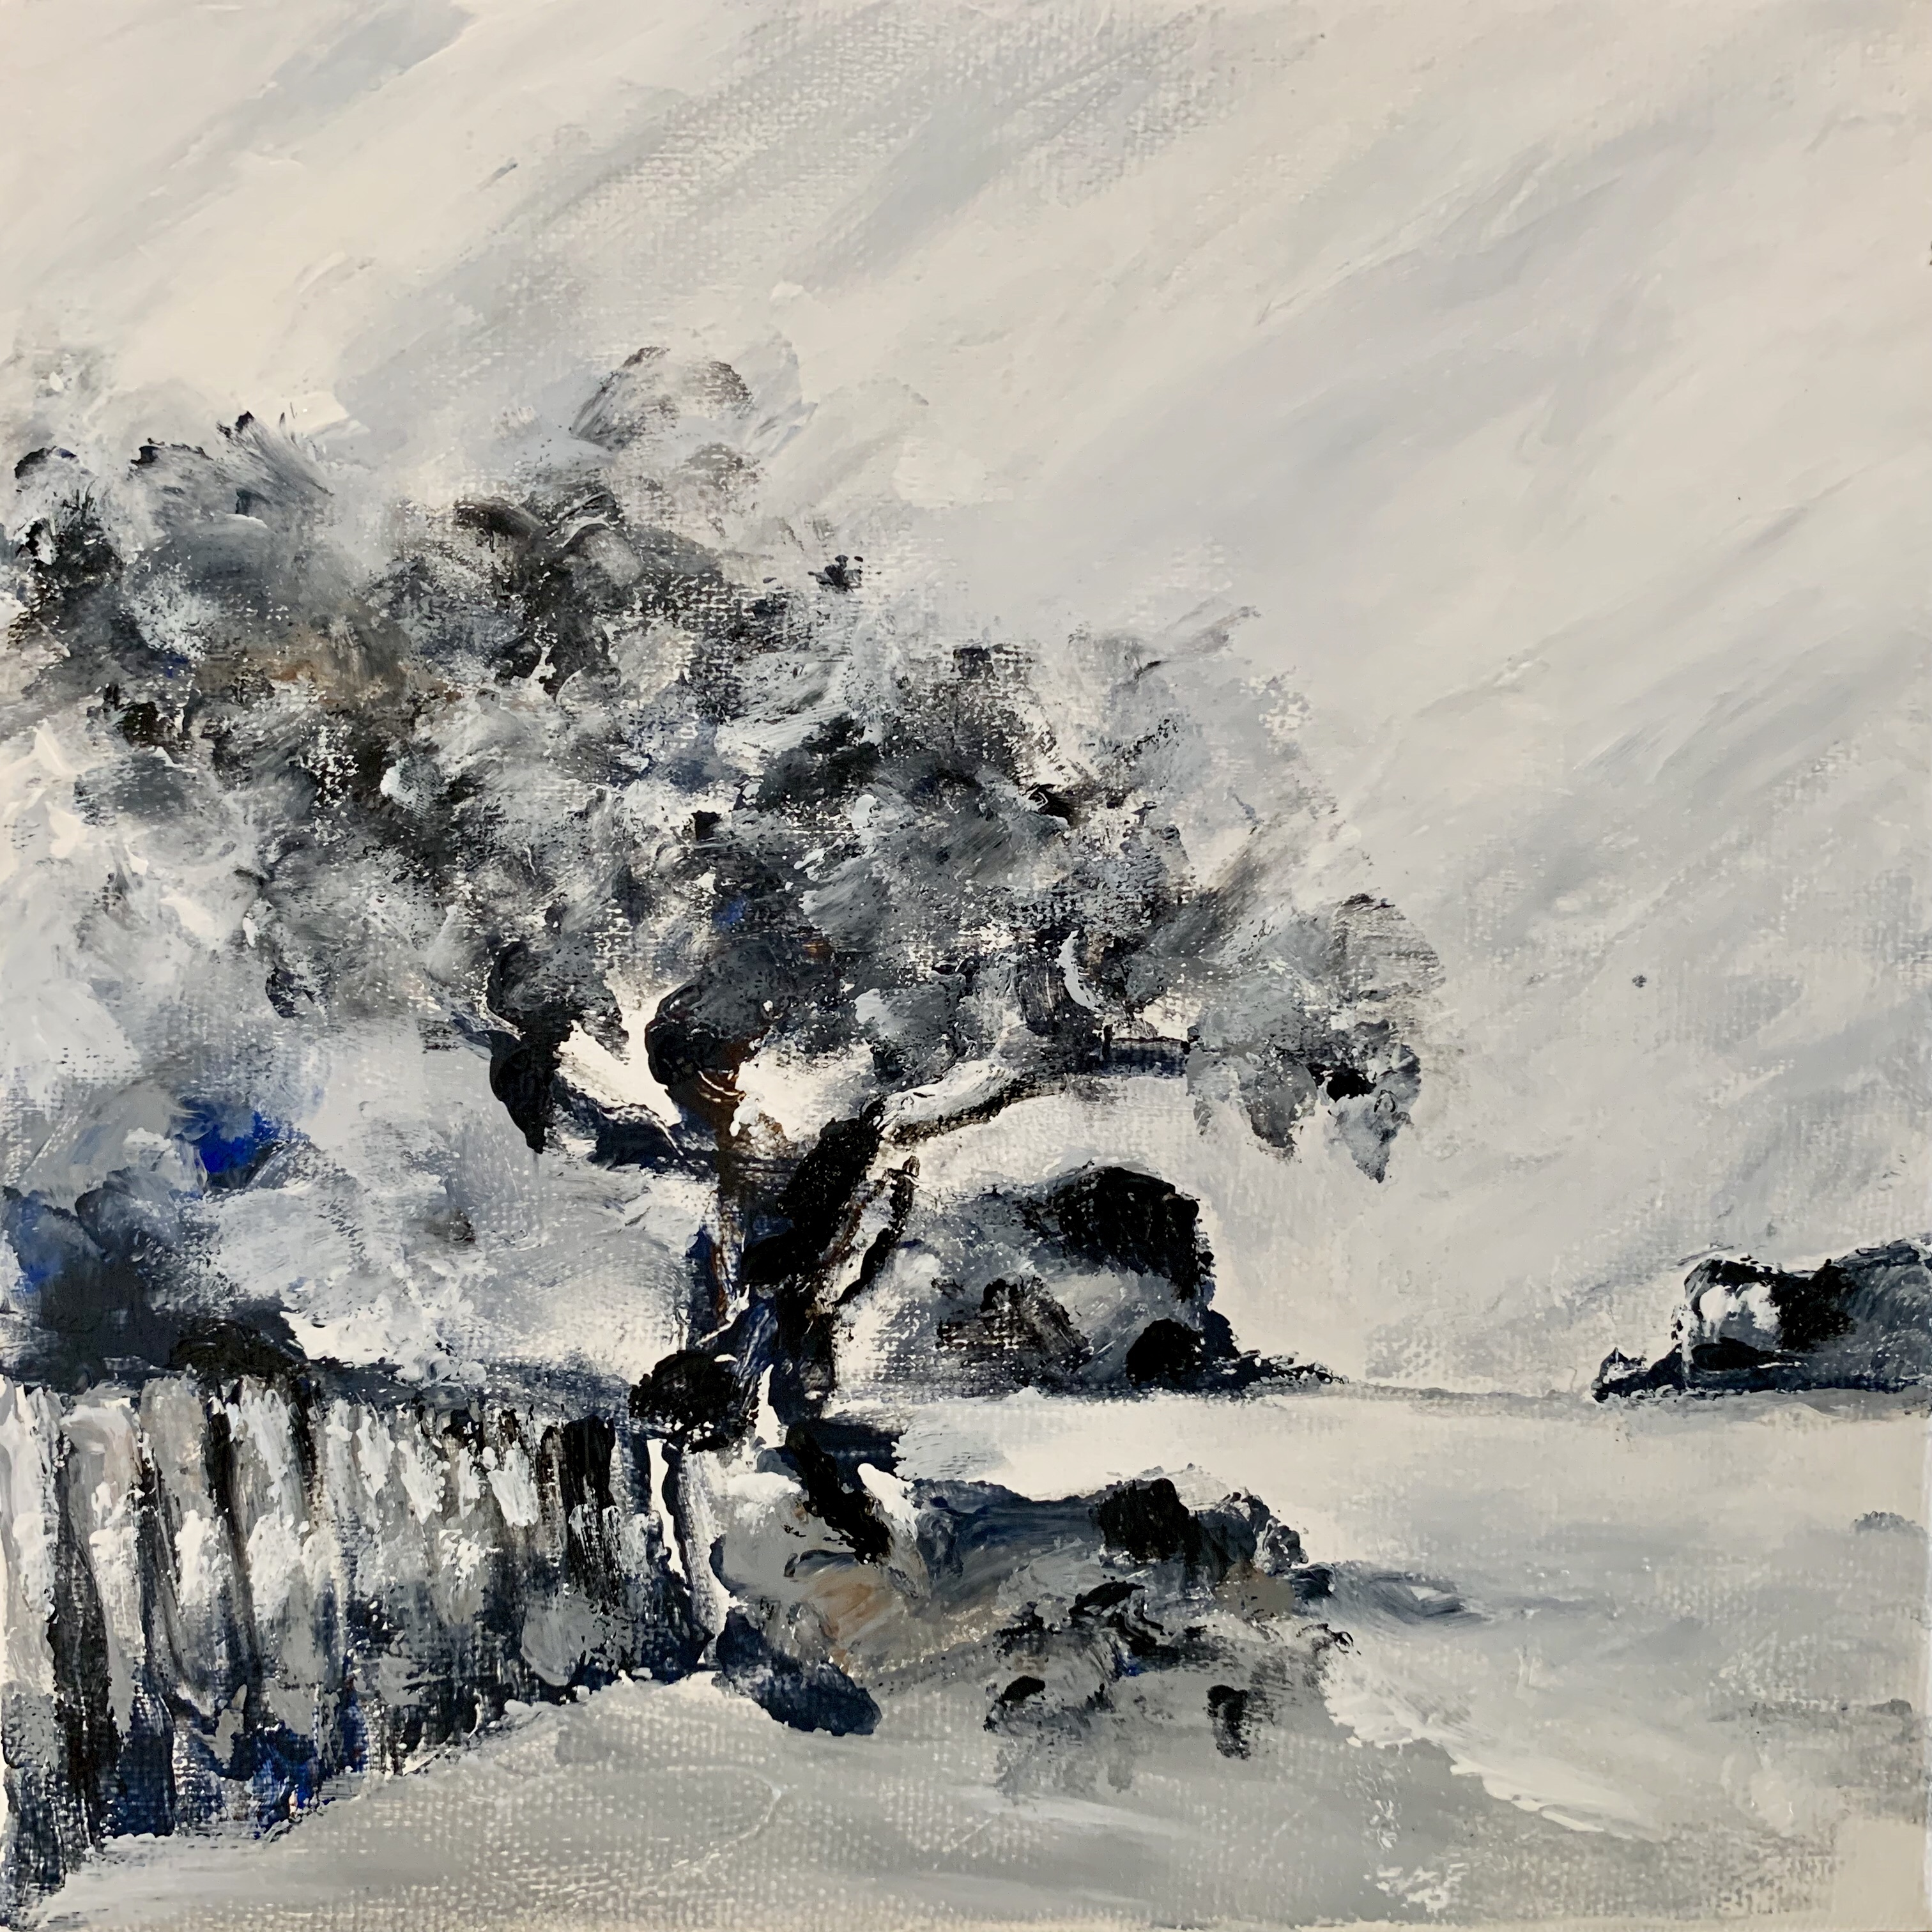 Abstract painting of the Knysna Heads from Bollard Bay